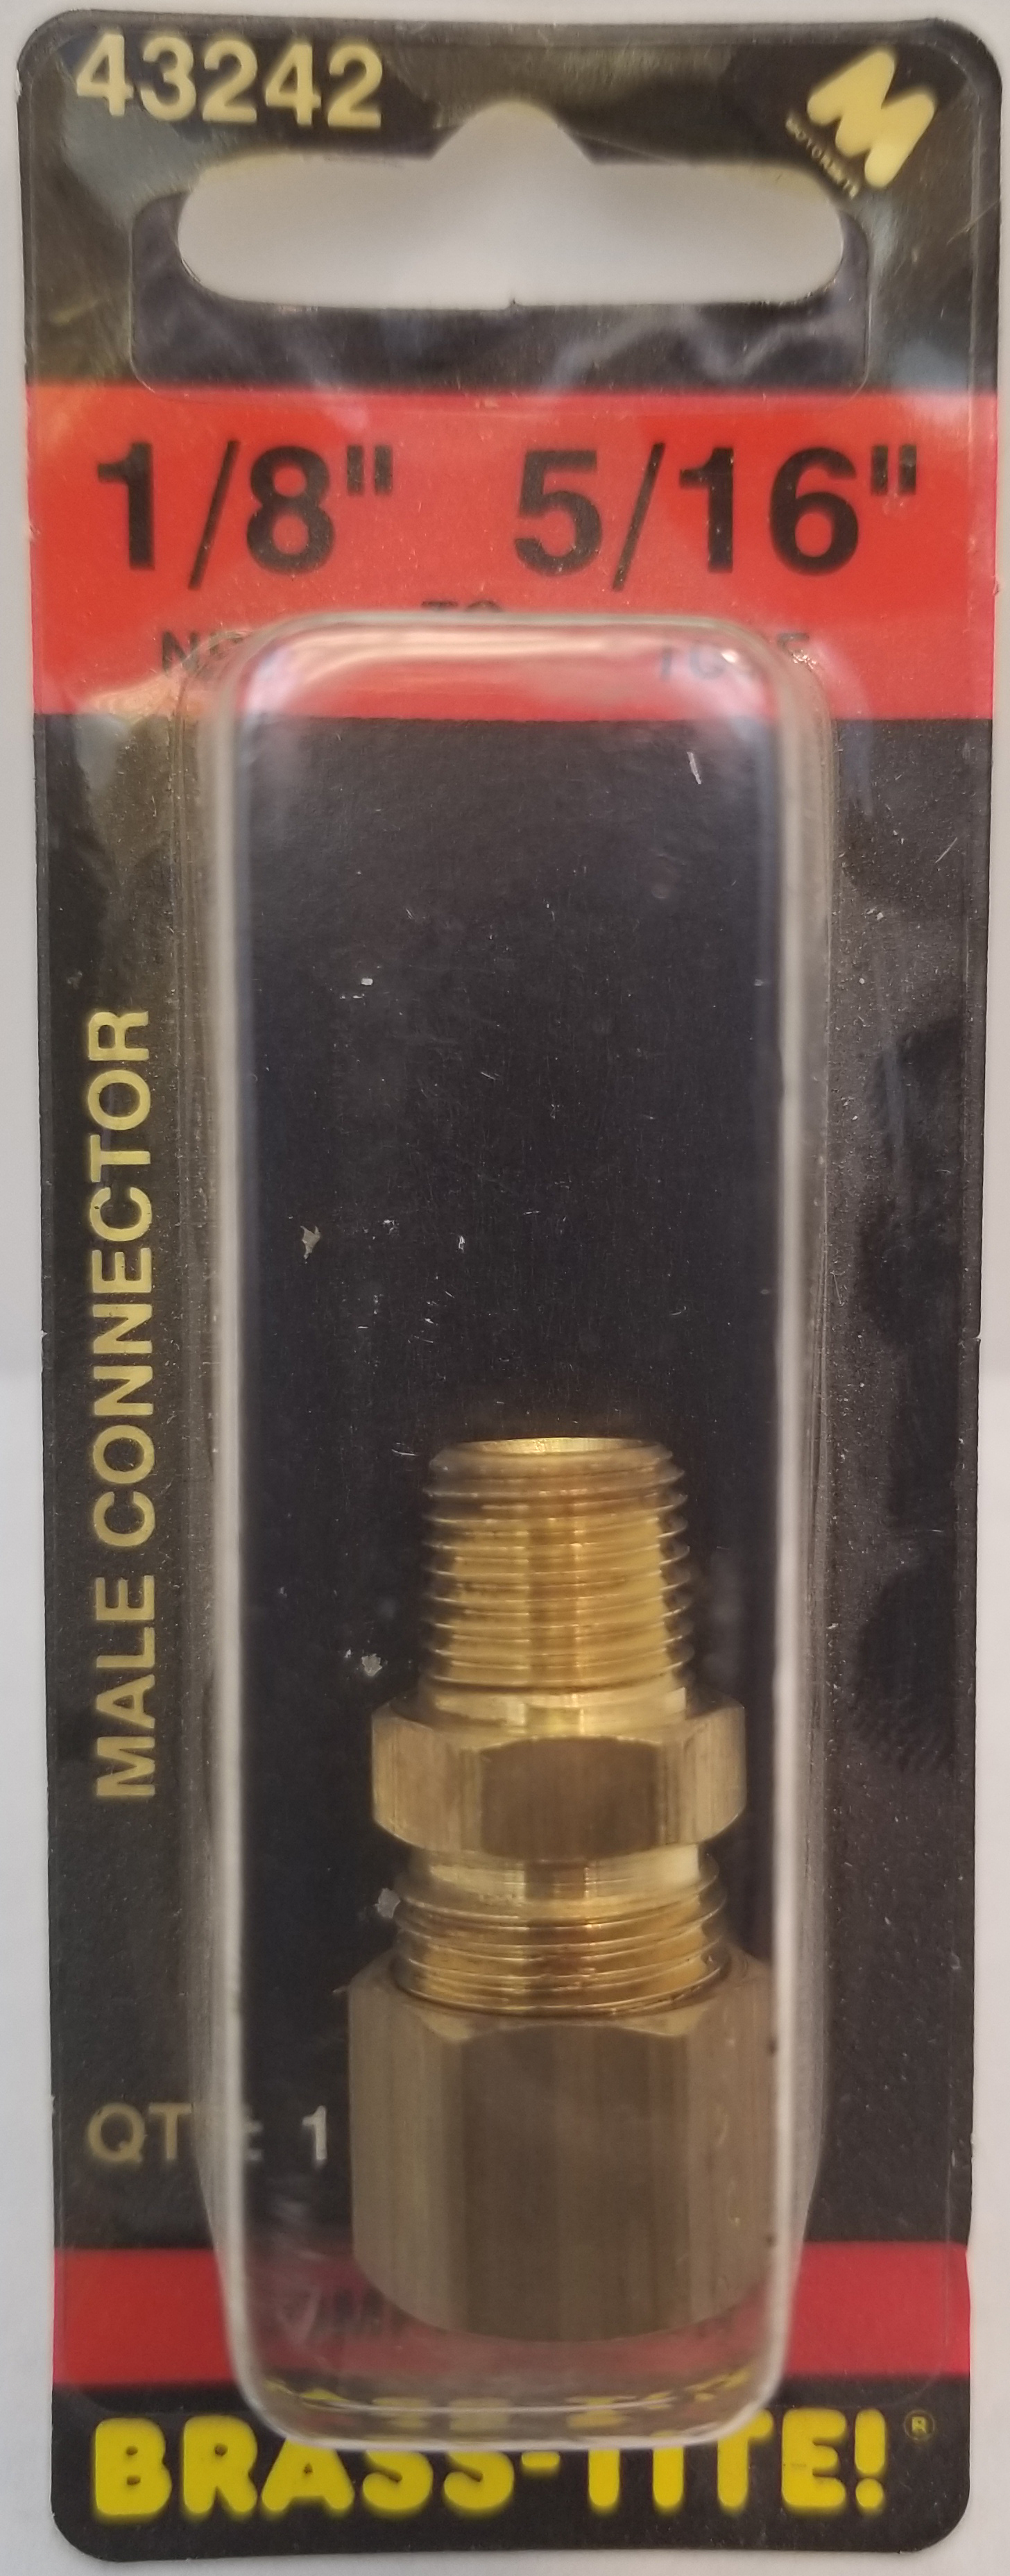 07443242 - Compression Connector (Brass)